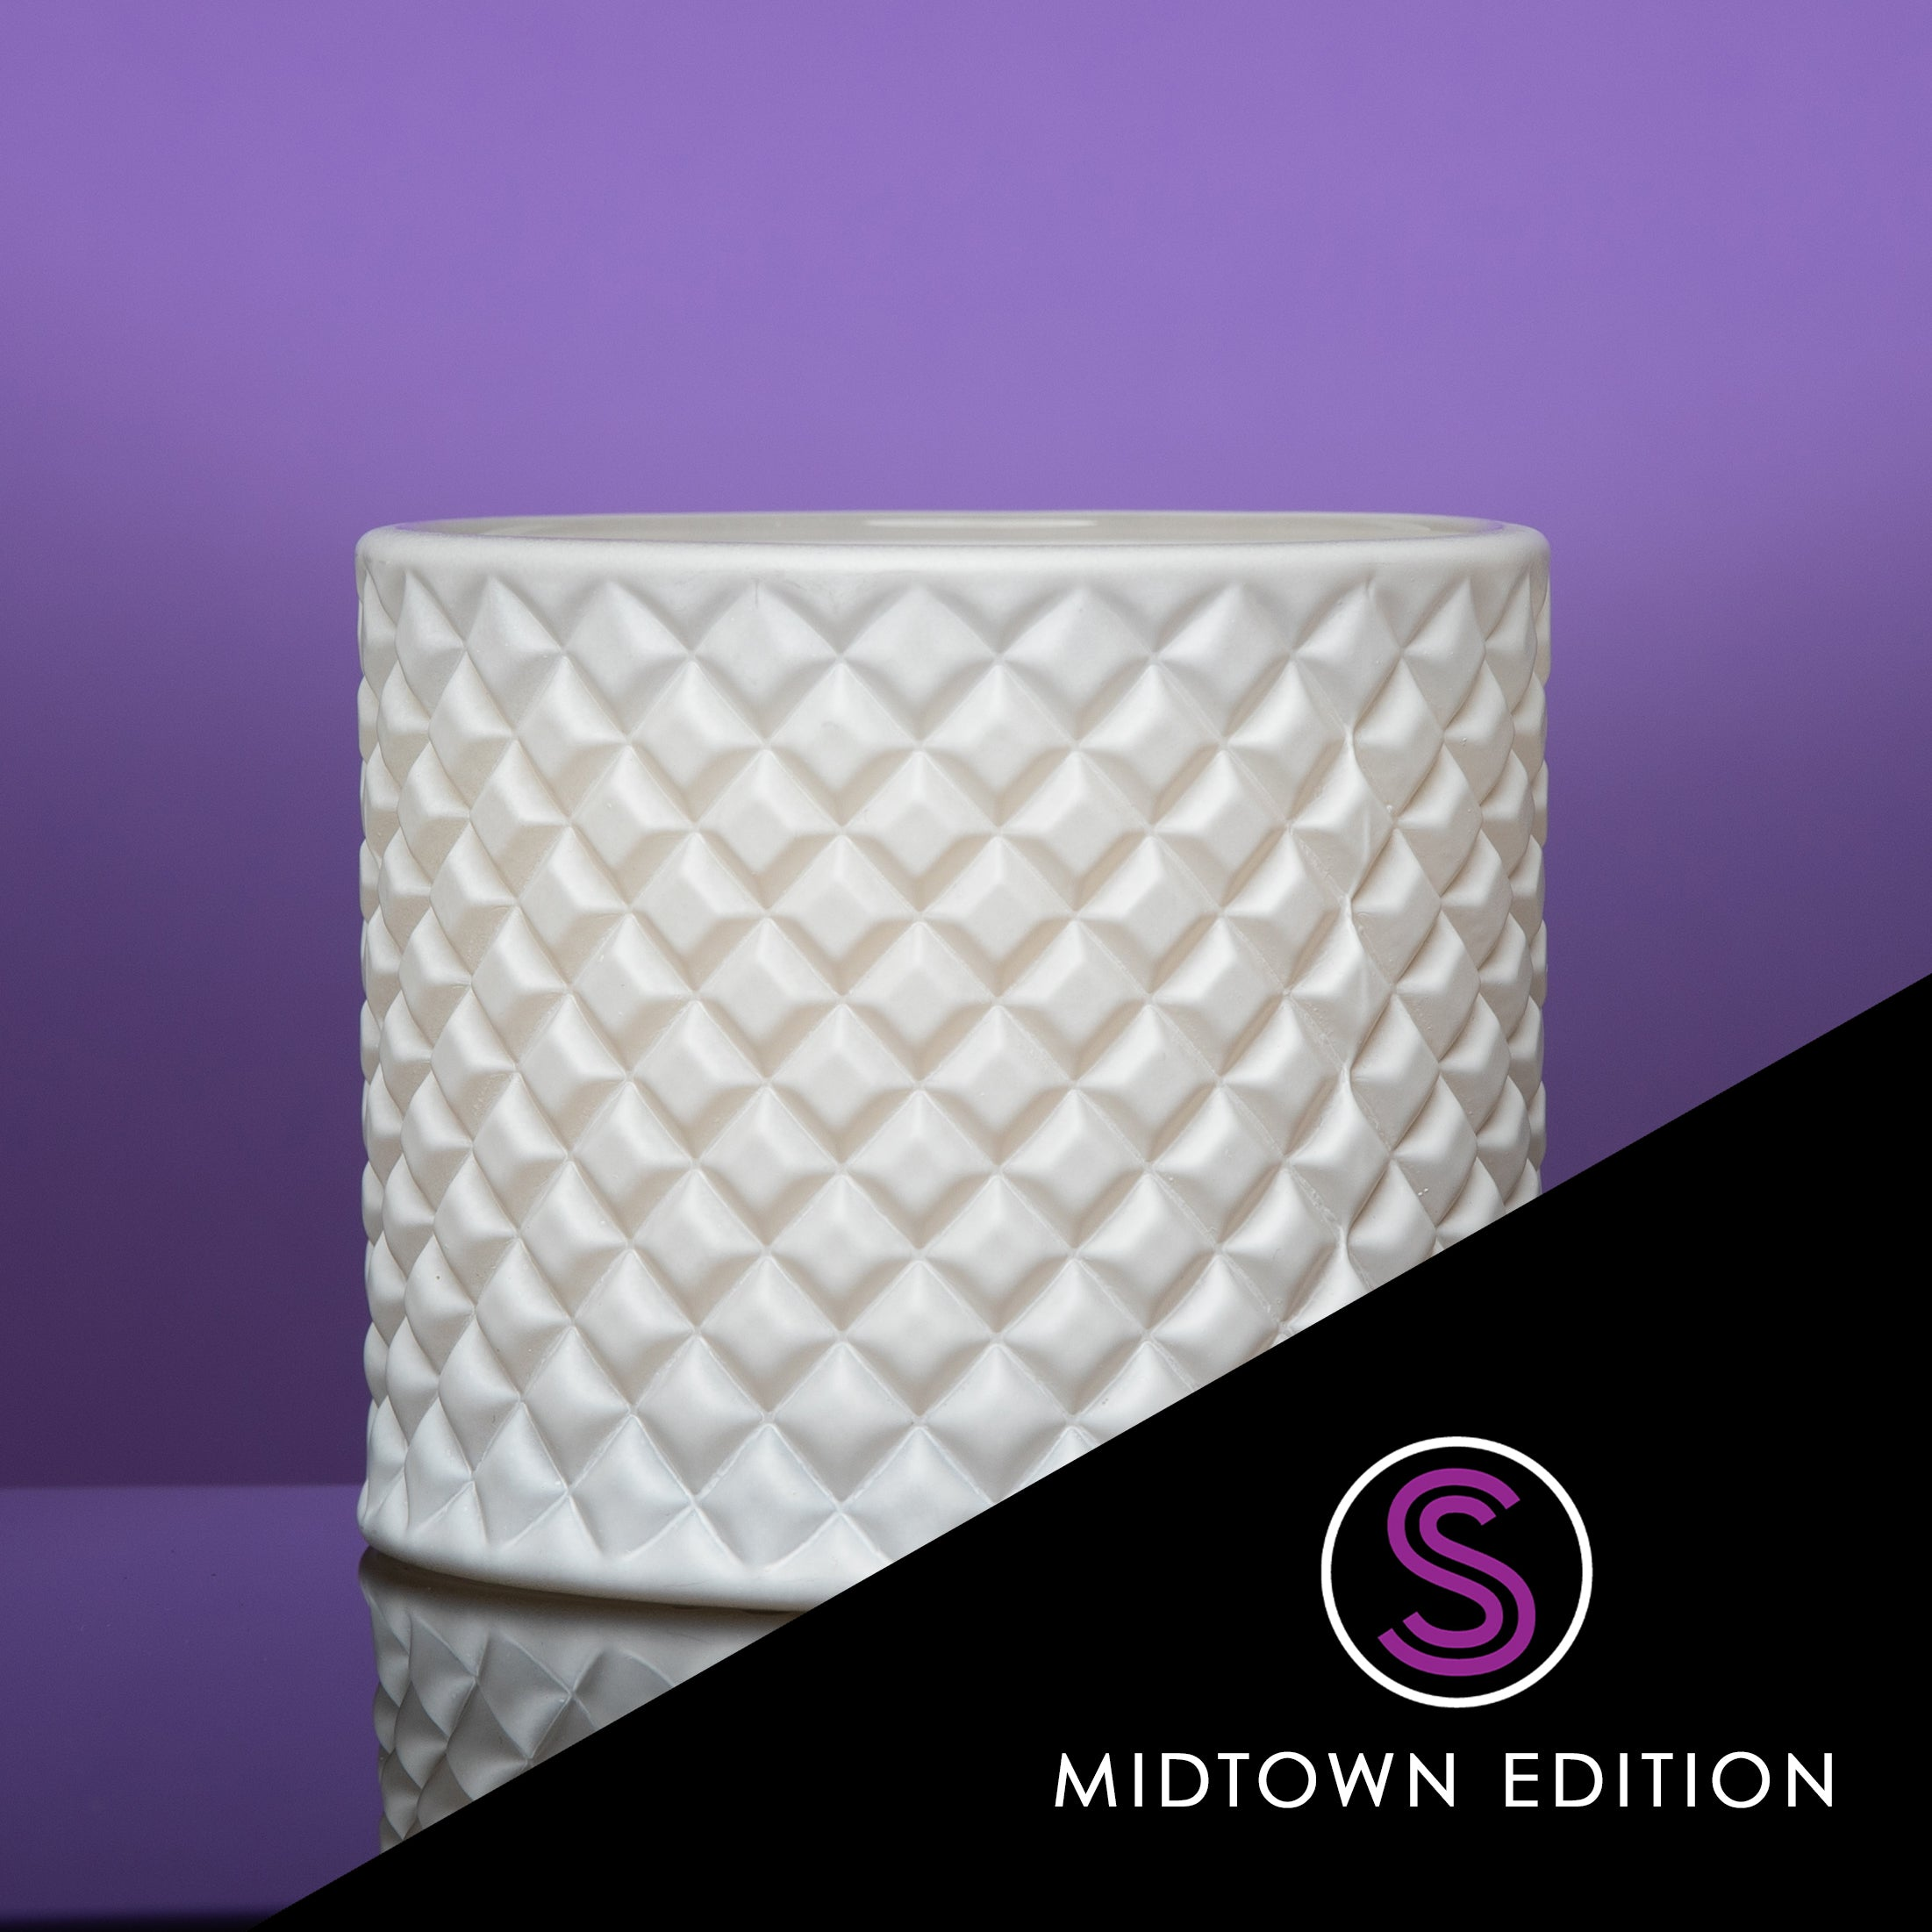 Midtown Edition-Luxury Vessel (White)